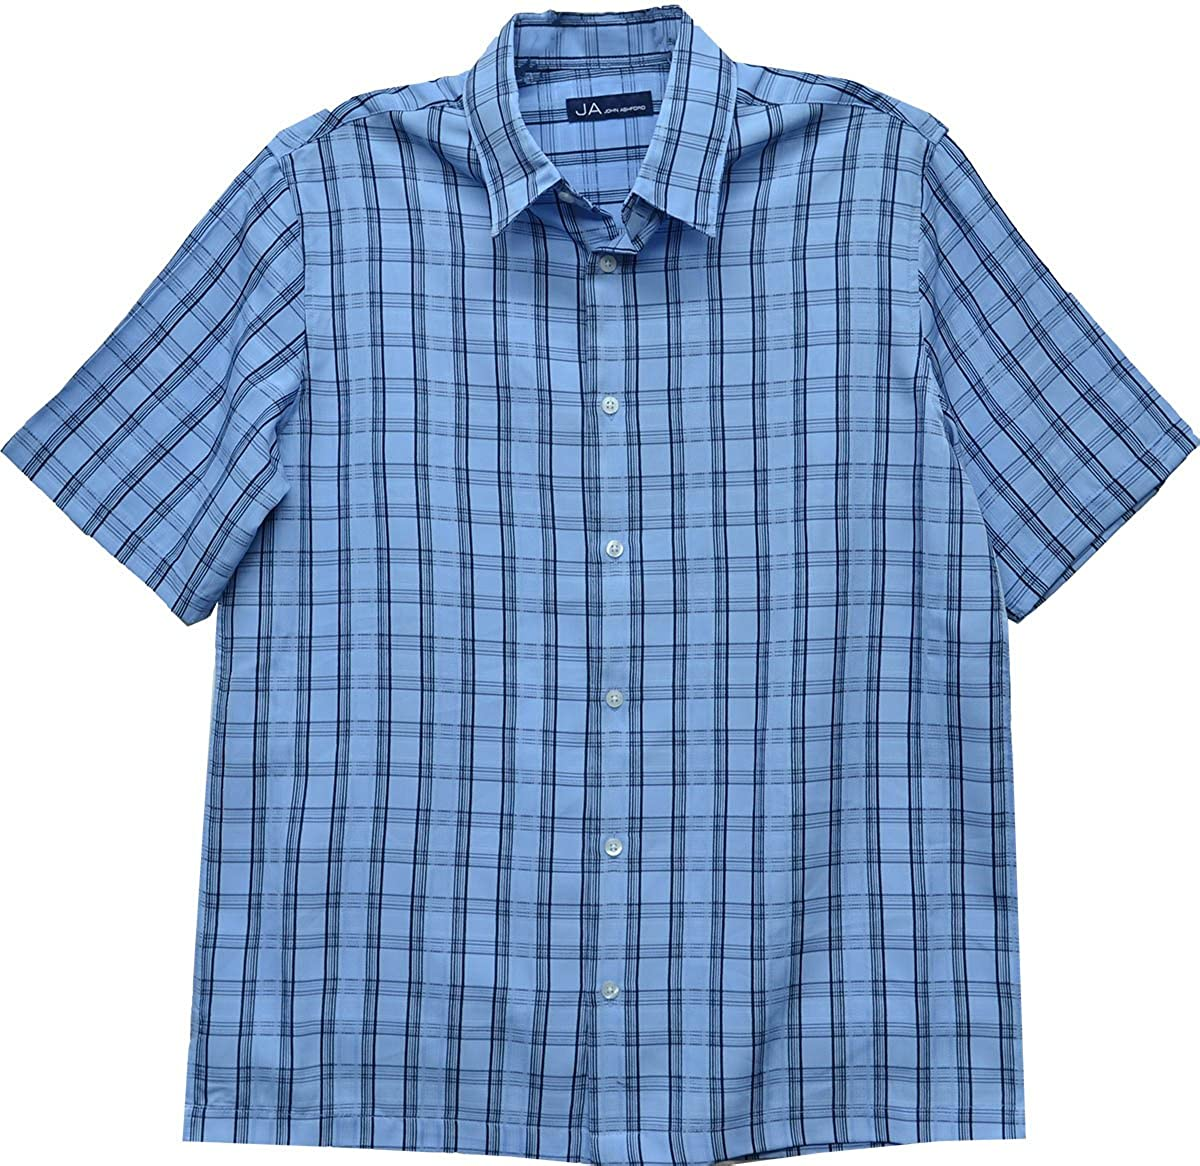 43bfaa8274 John Ashford Men's Short Sleeve Shirt, Classic Fit Lupine Blue ...